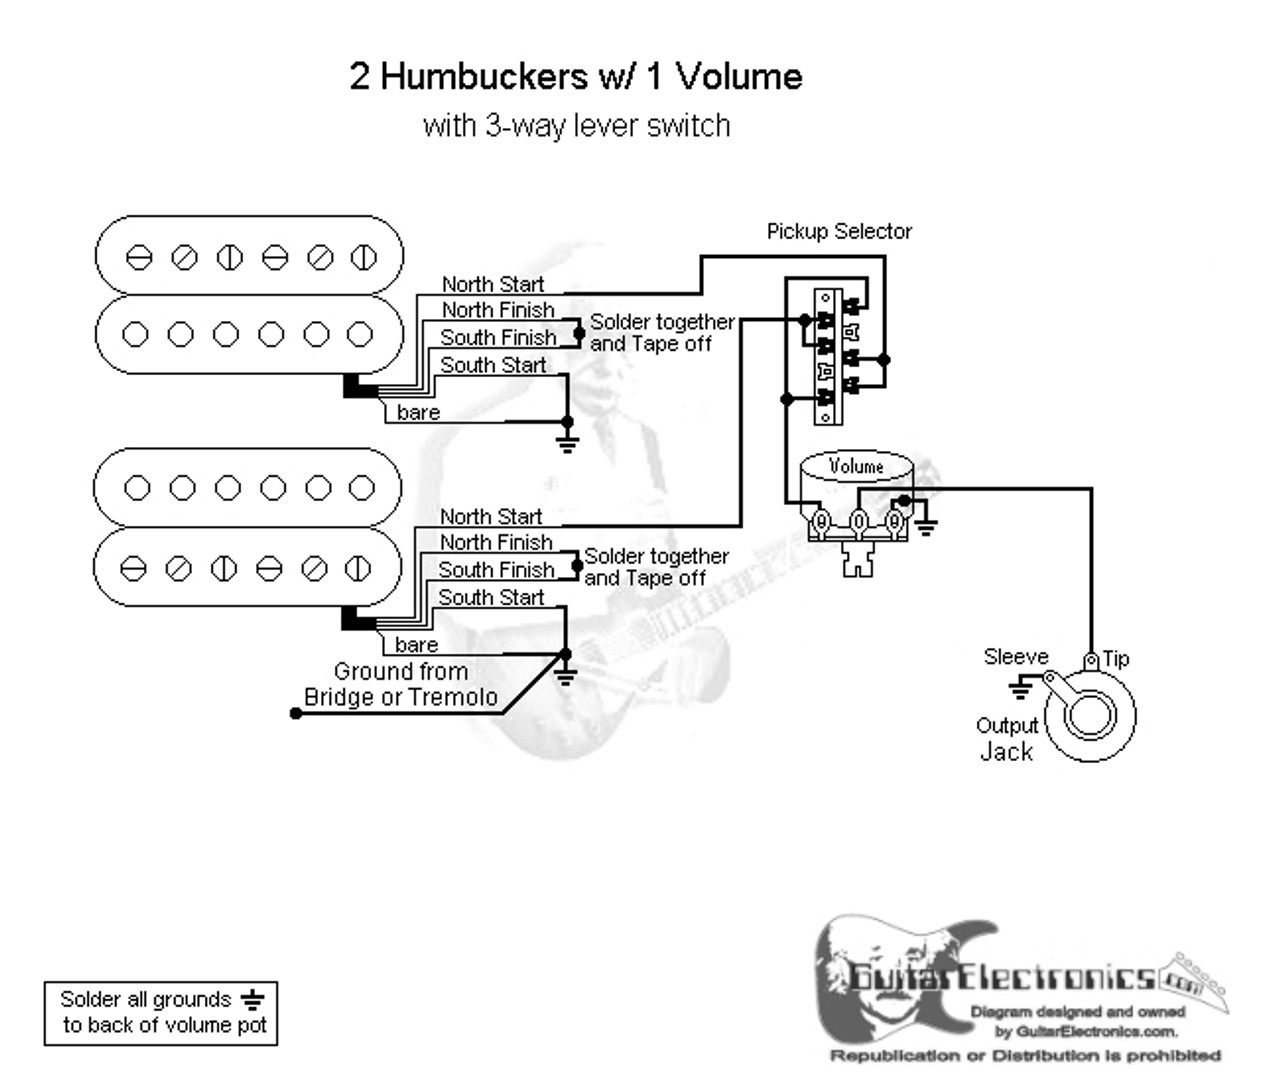 medium resolution of 2 humbuckers 3 way lever switch 1 volume guitar wiring diagram 2 humbuckers 3 way switch humbucker wire